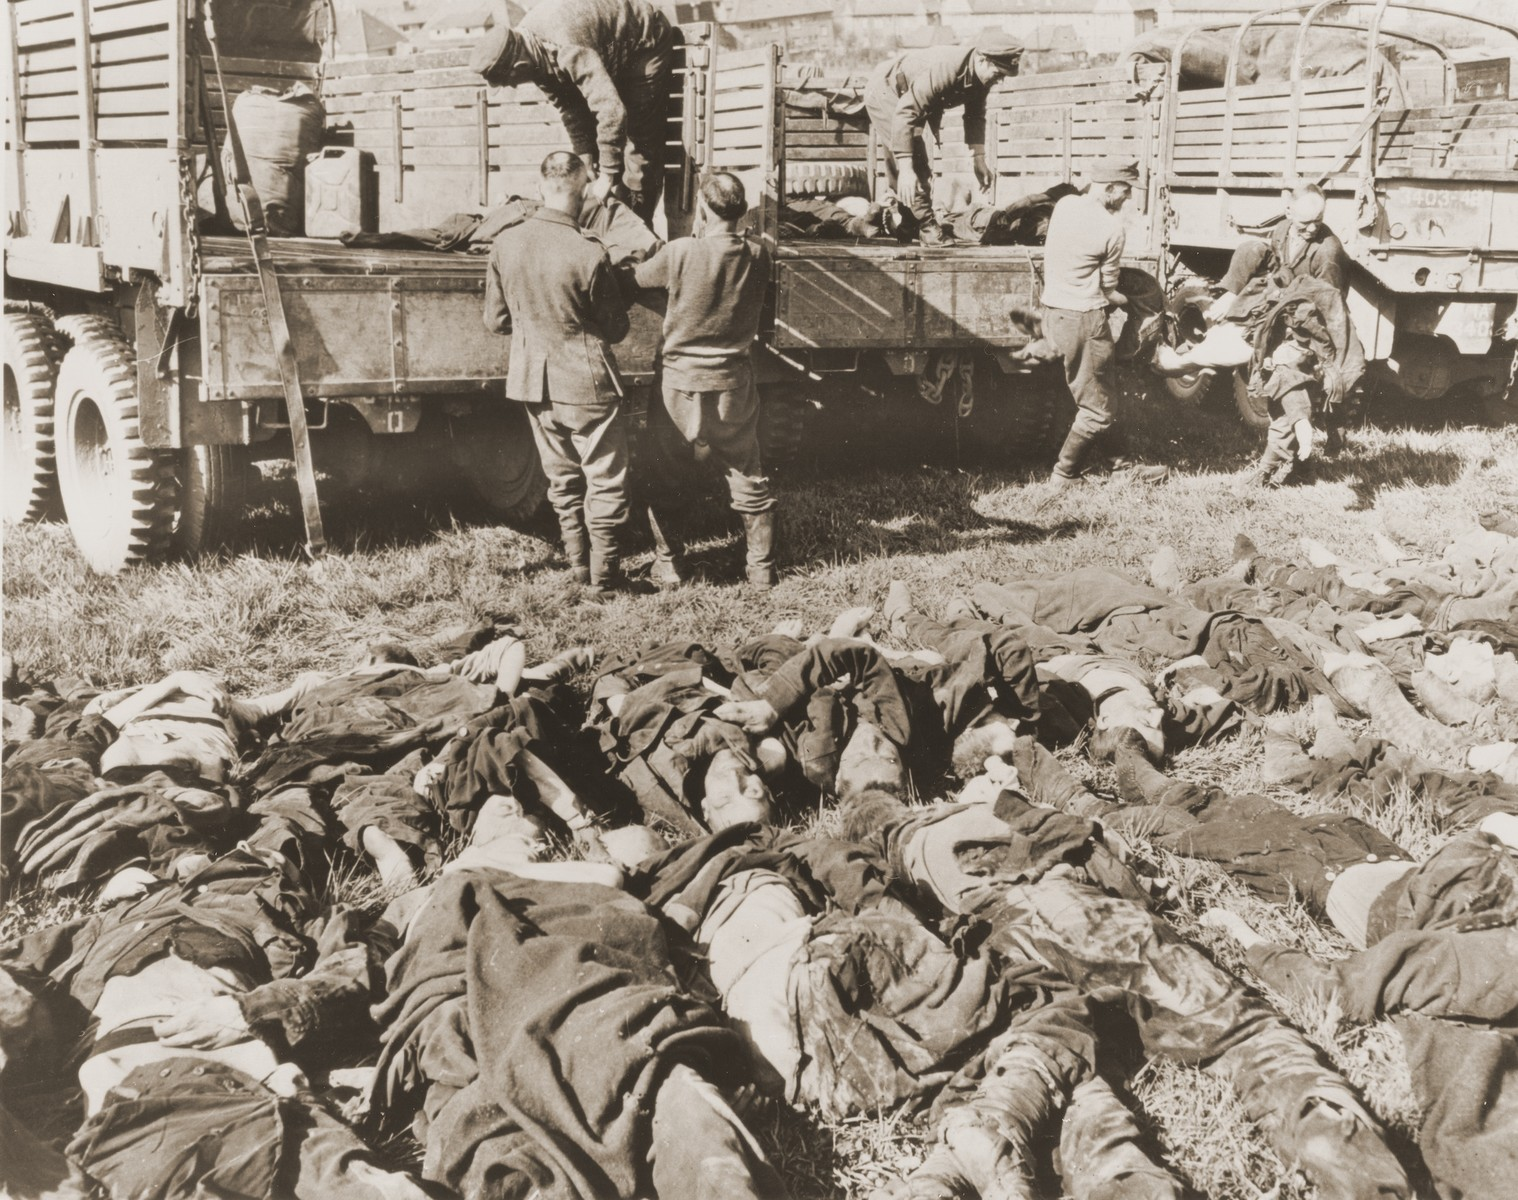 German POWs prepare to bury the bodies of 200 Soviet prisoners who perished in the Hemer POW camp.